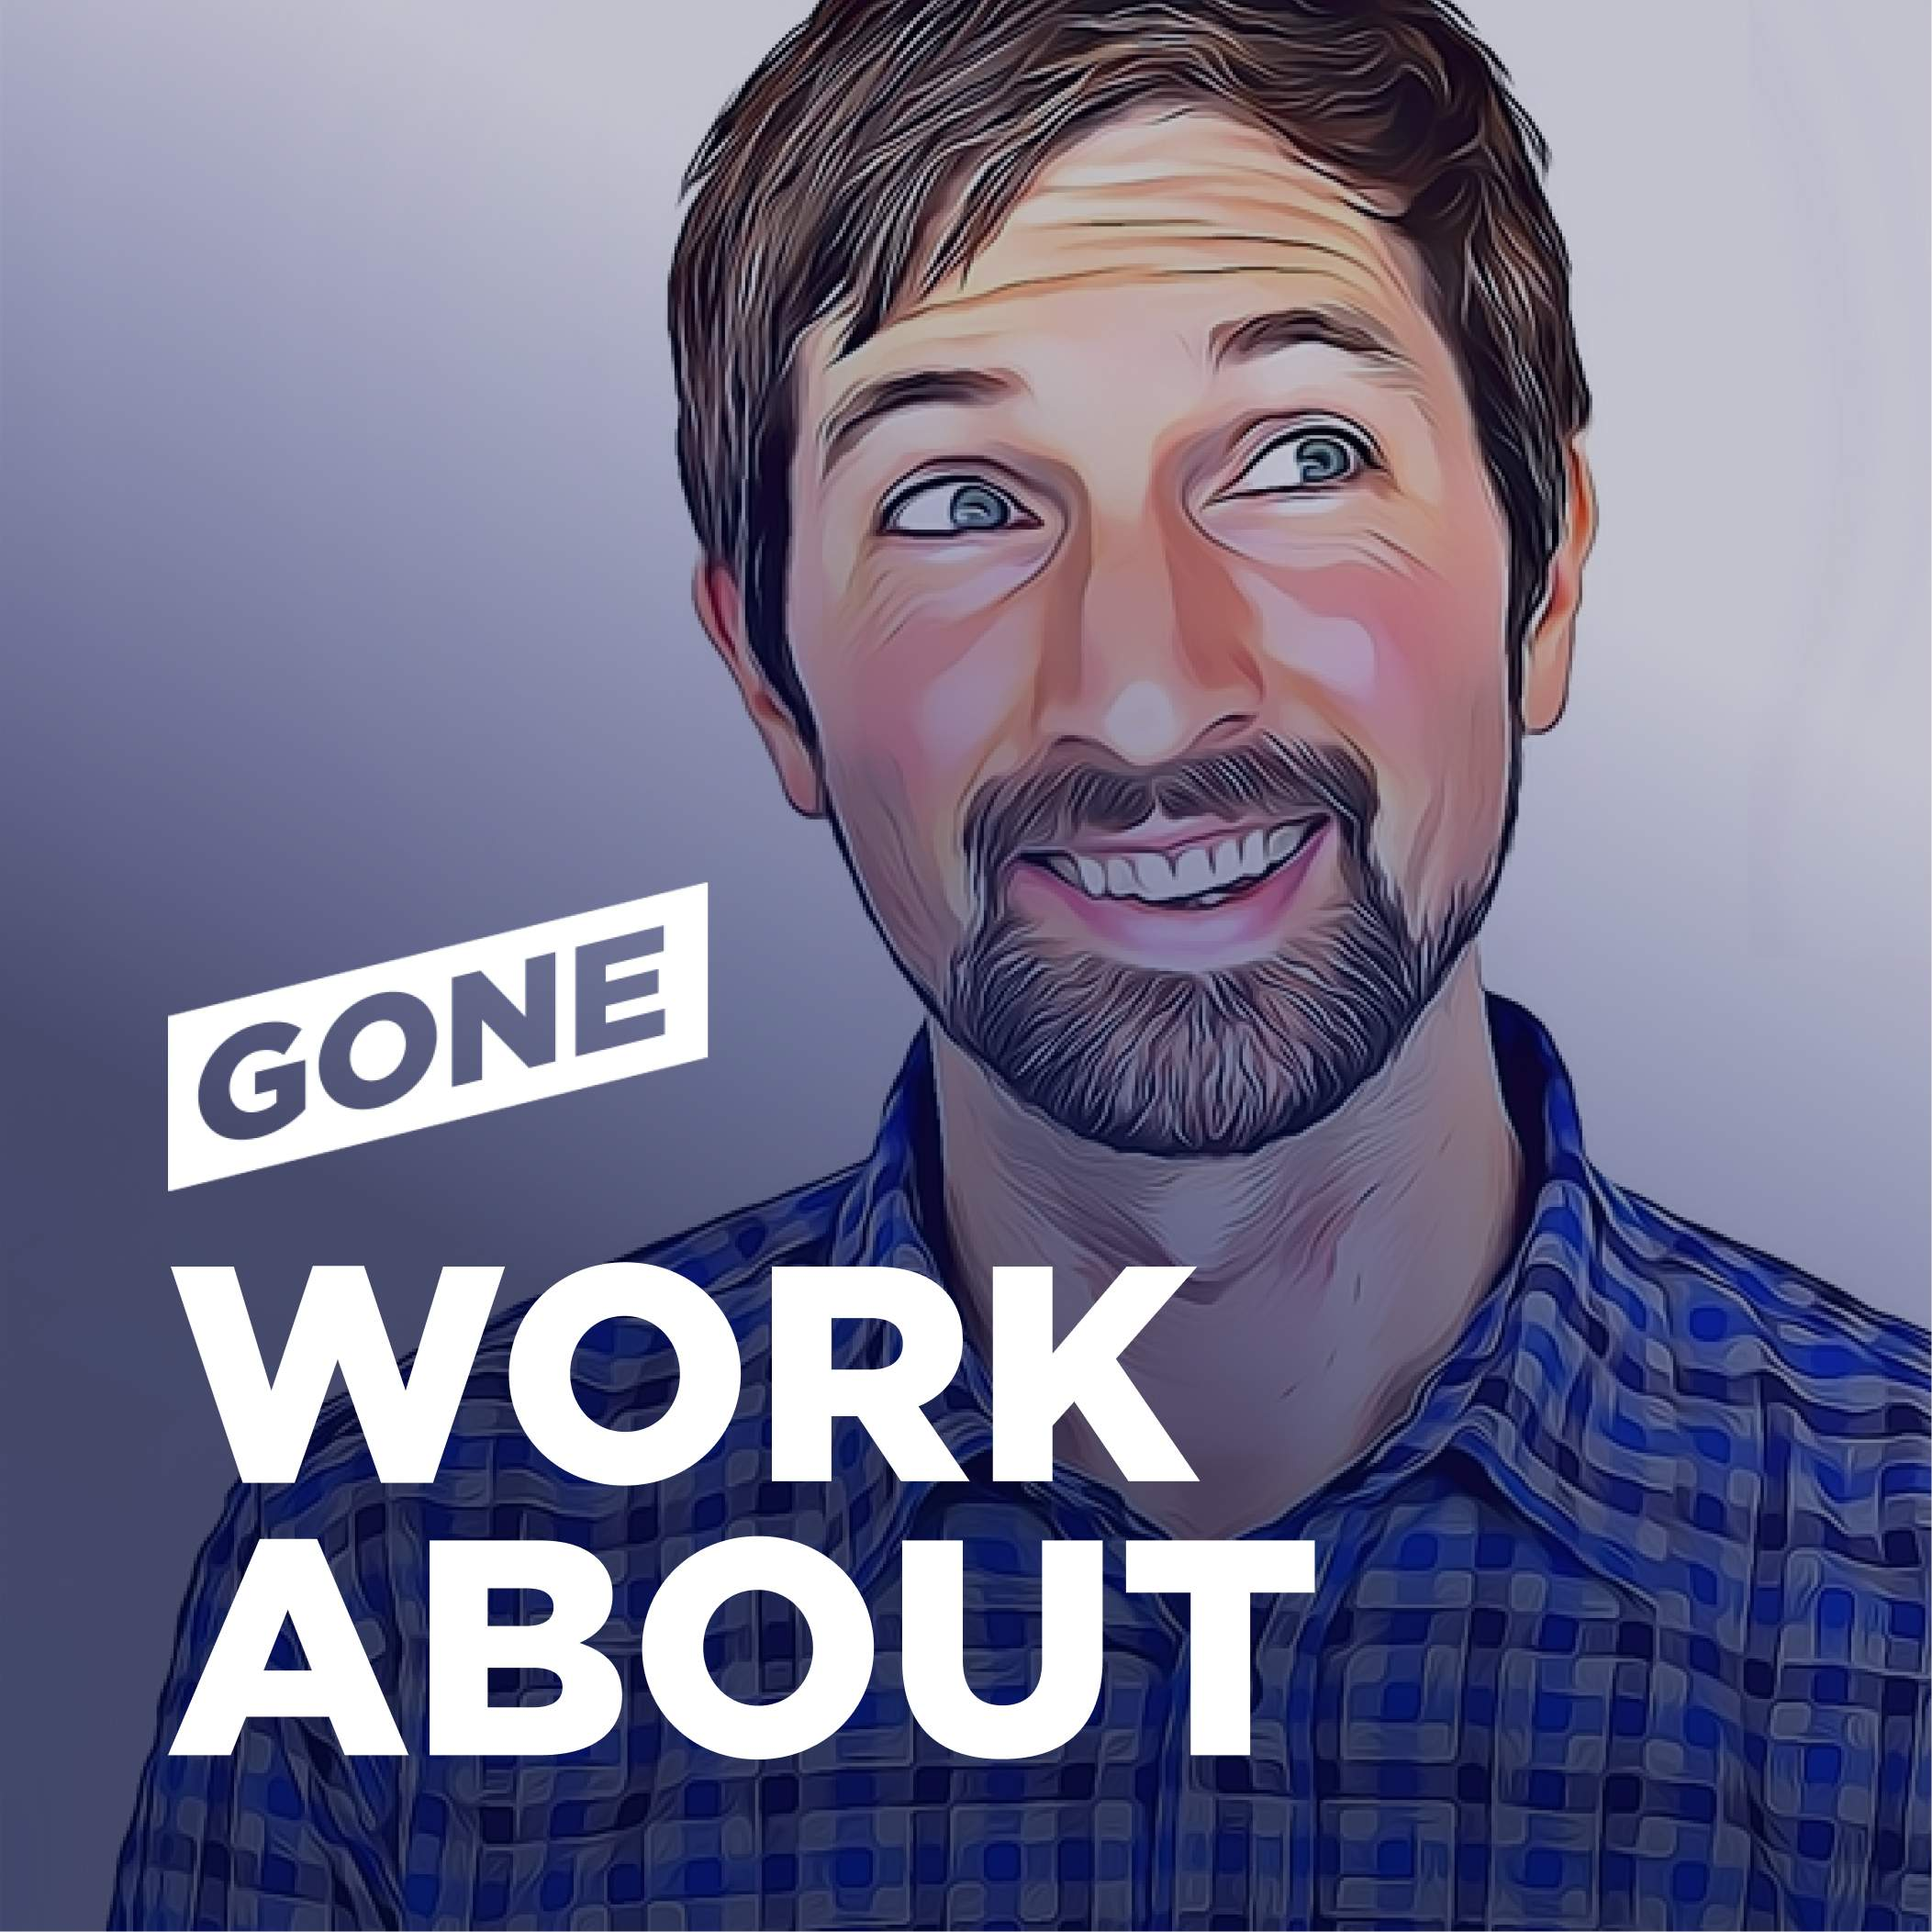 Show artwork for Gone Workabout